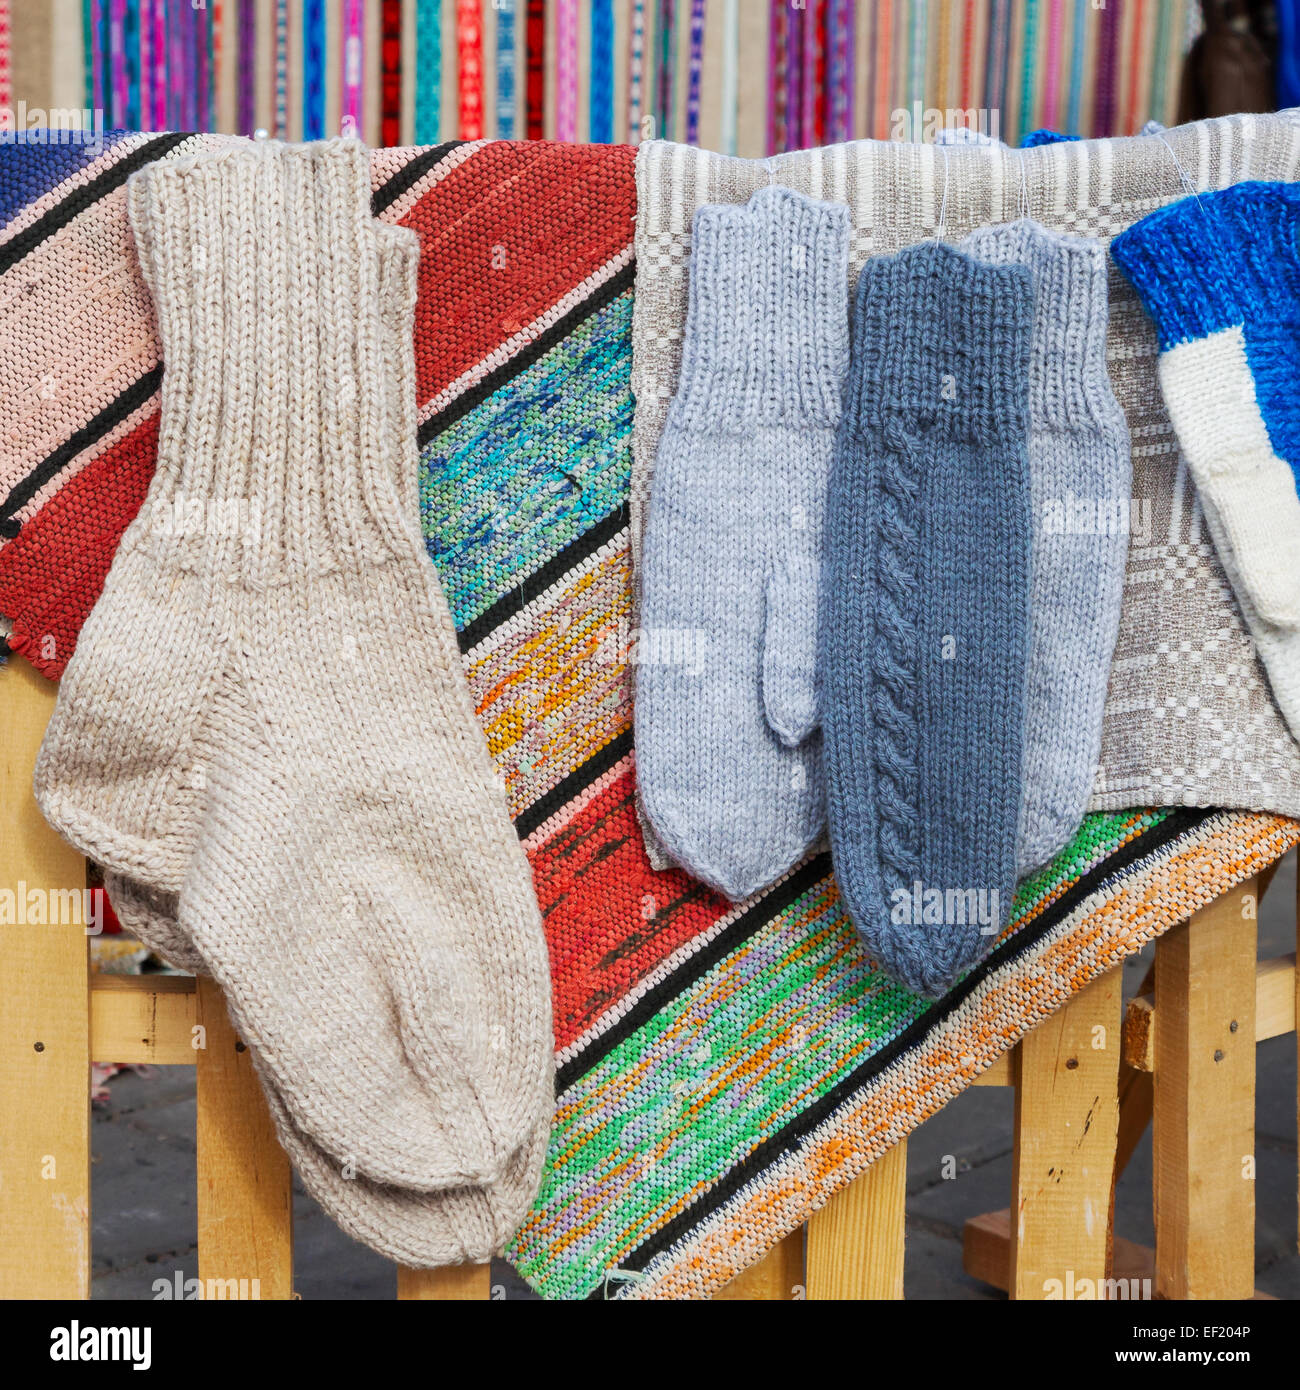 wool socks and mittens hanging on simple rustic cloth - Stock Image